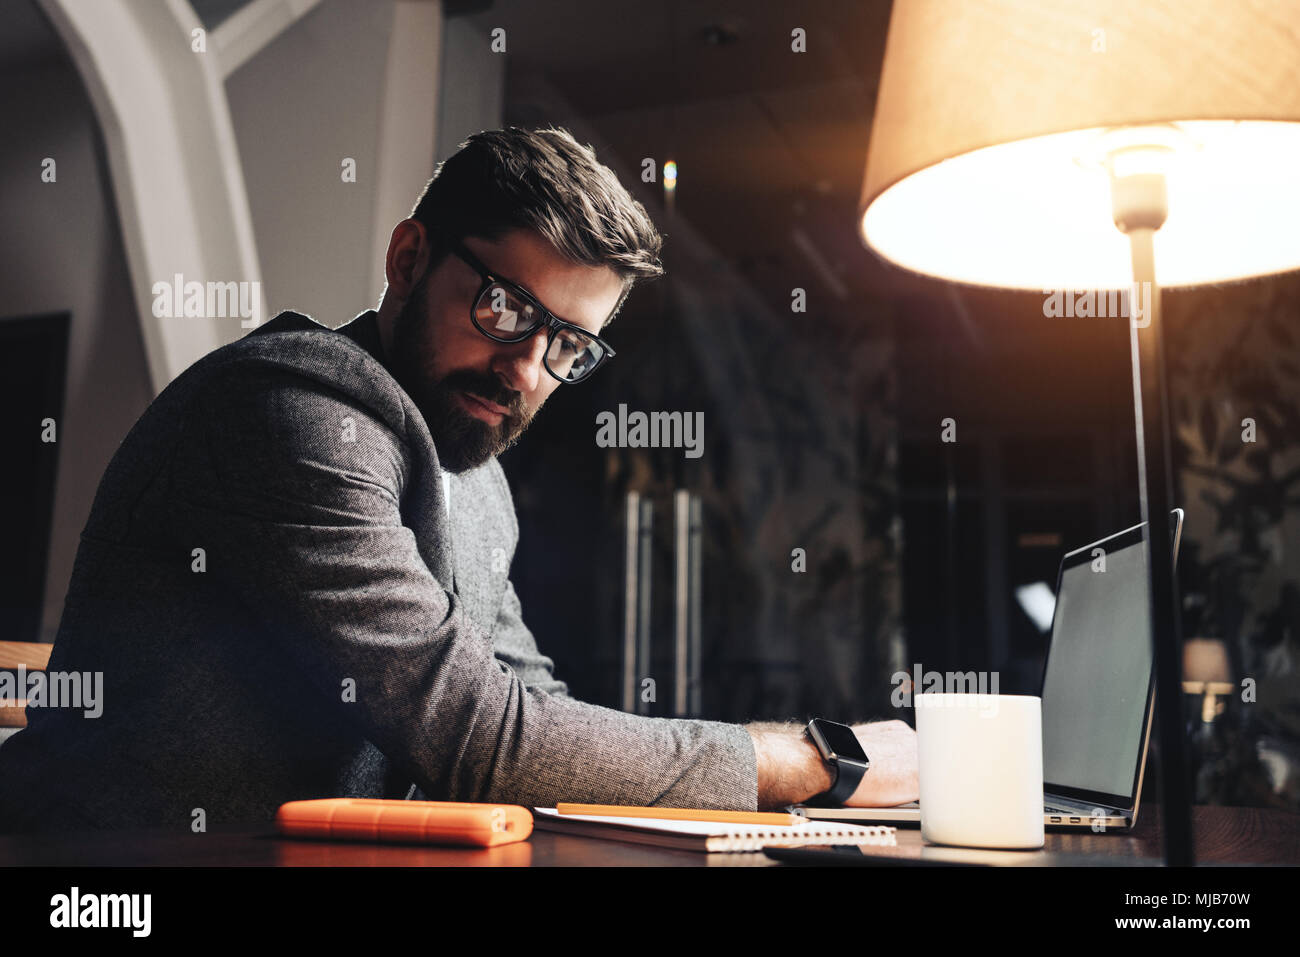 Young man working at night modern office. Blurred background. Bearded manager using laptop and paper notepad. Wearing office dress code and eye galsse - Stock Image